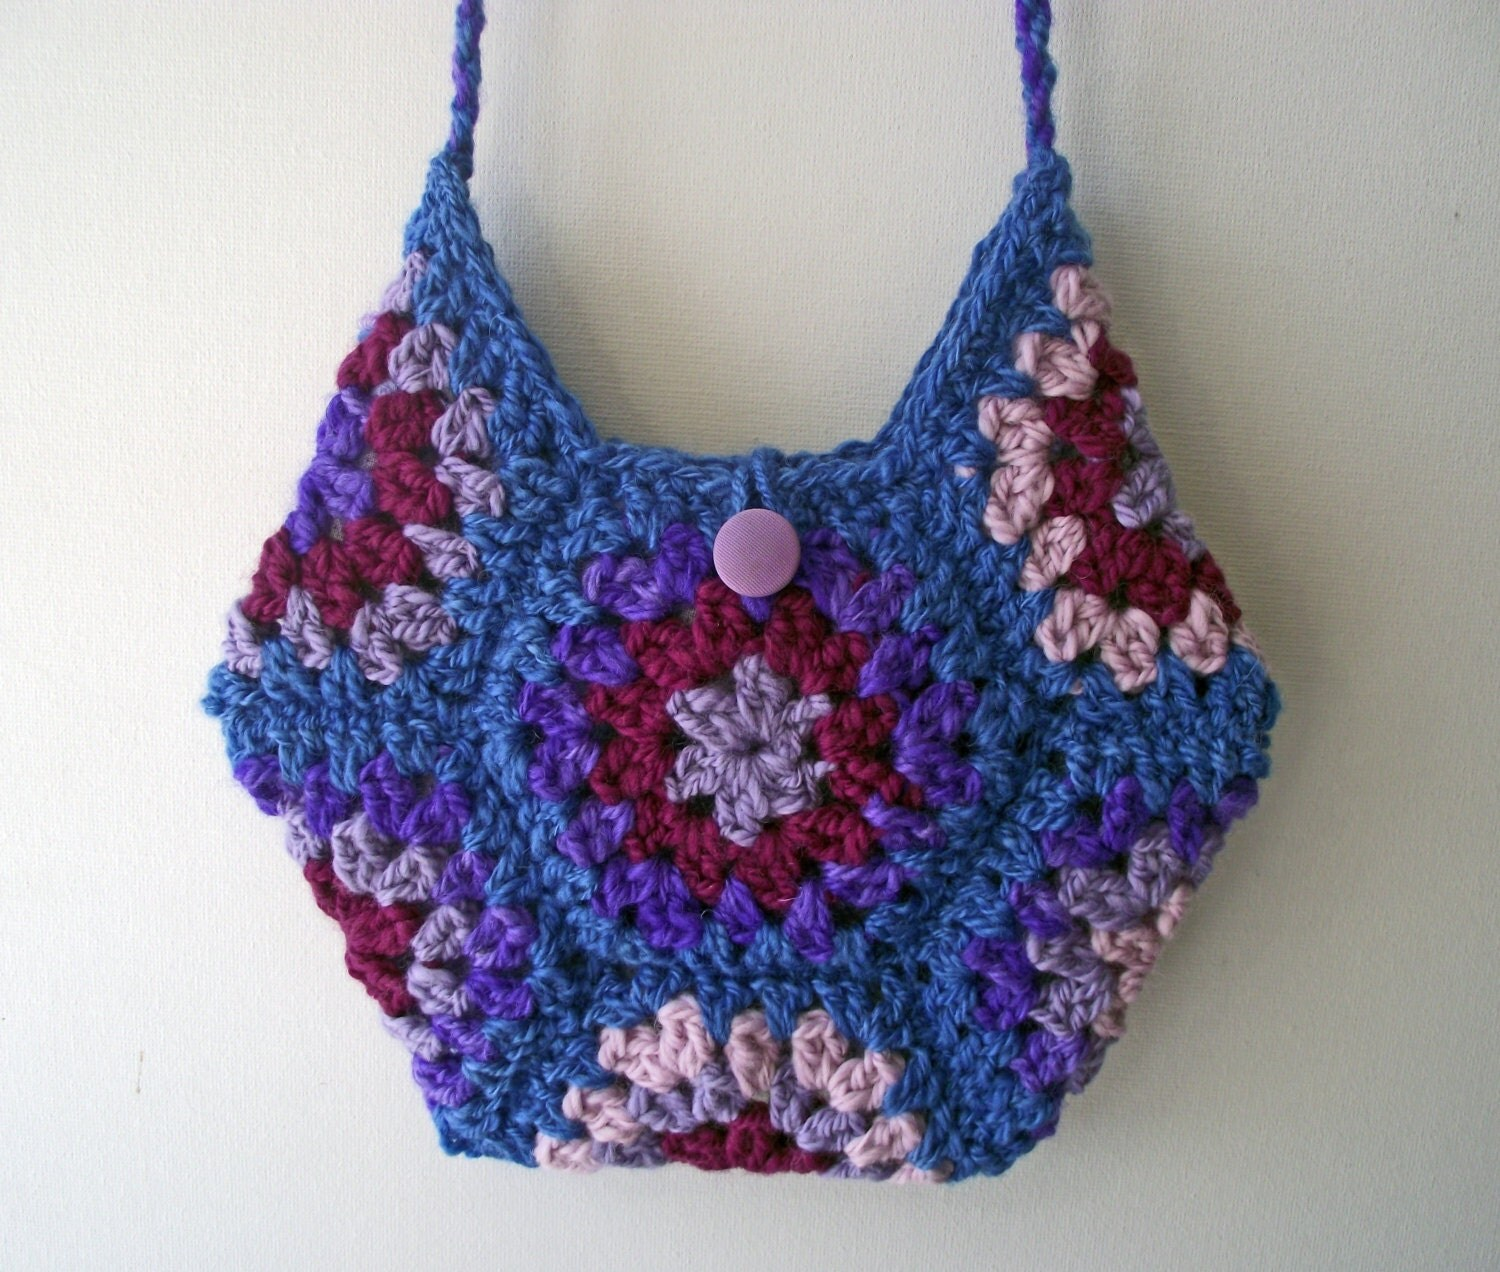 Crochet Hexagon Bag Lined Wool Artisan Boho Bag by WonderWoollens